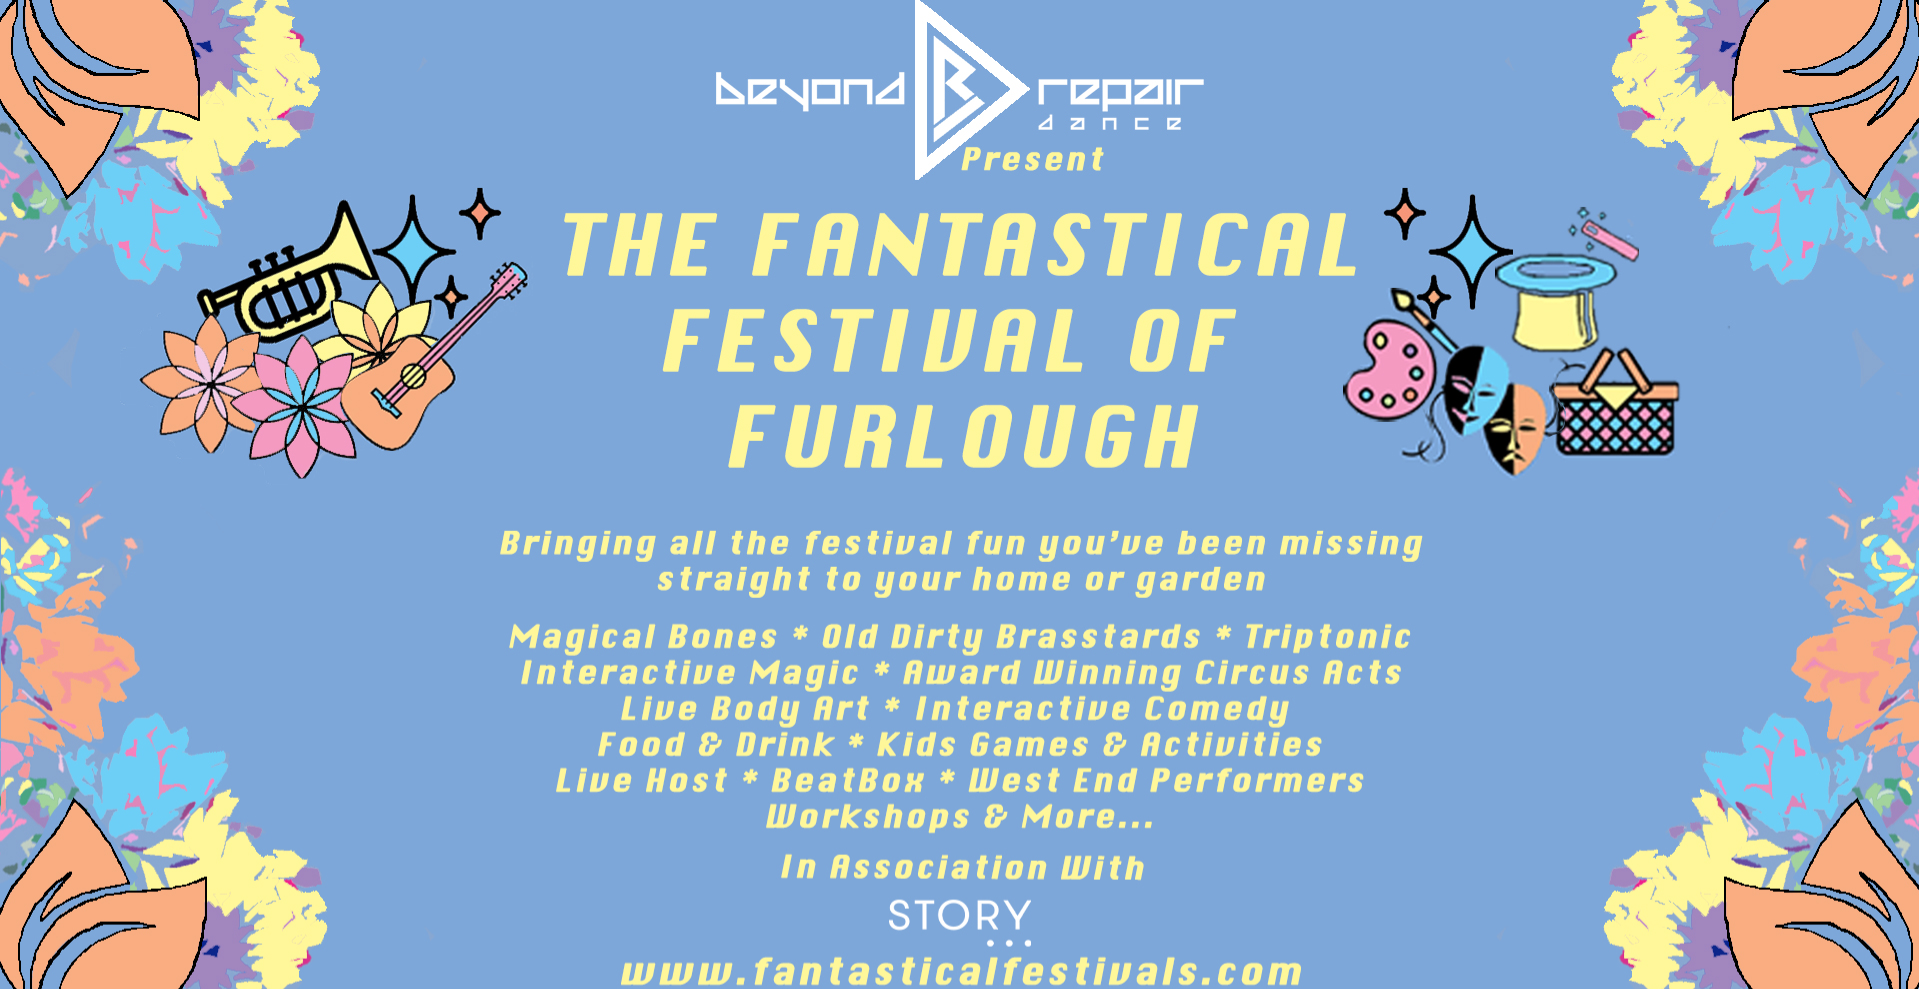 The Fantastical Festival of Furlough